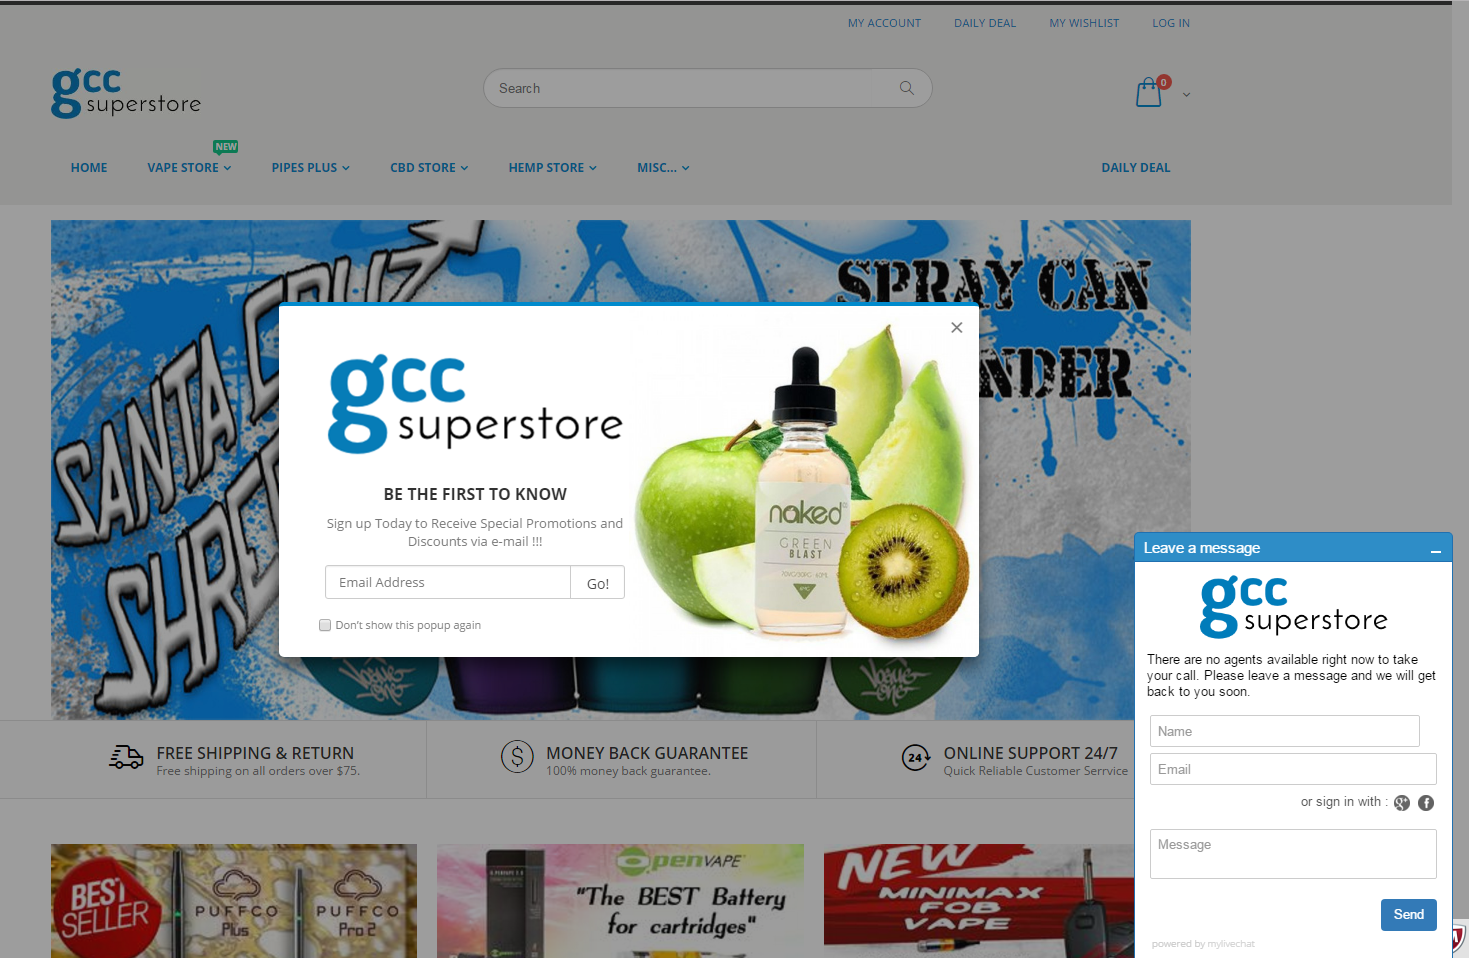 GCC SUPERSTORE